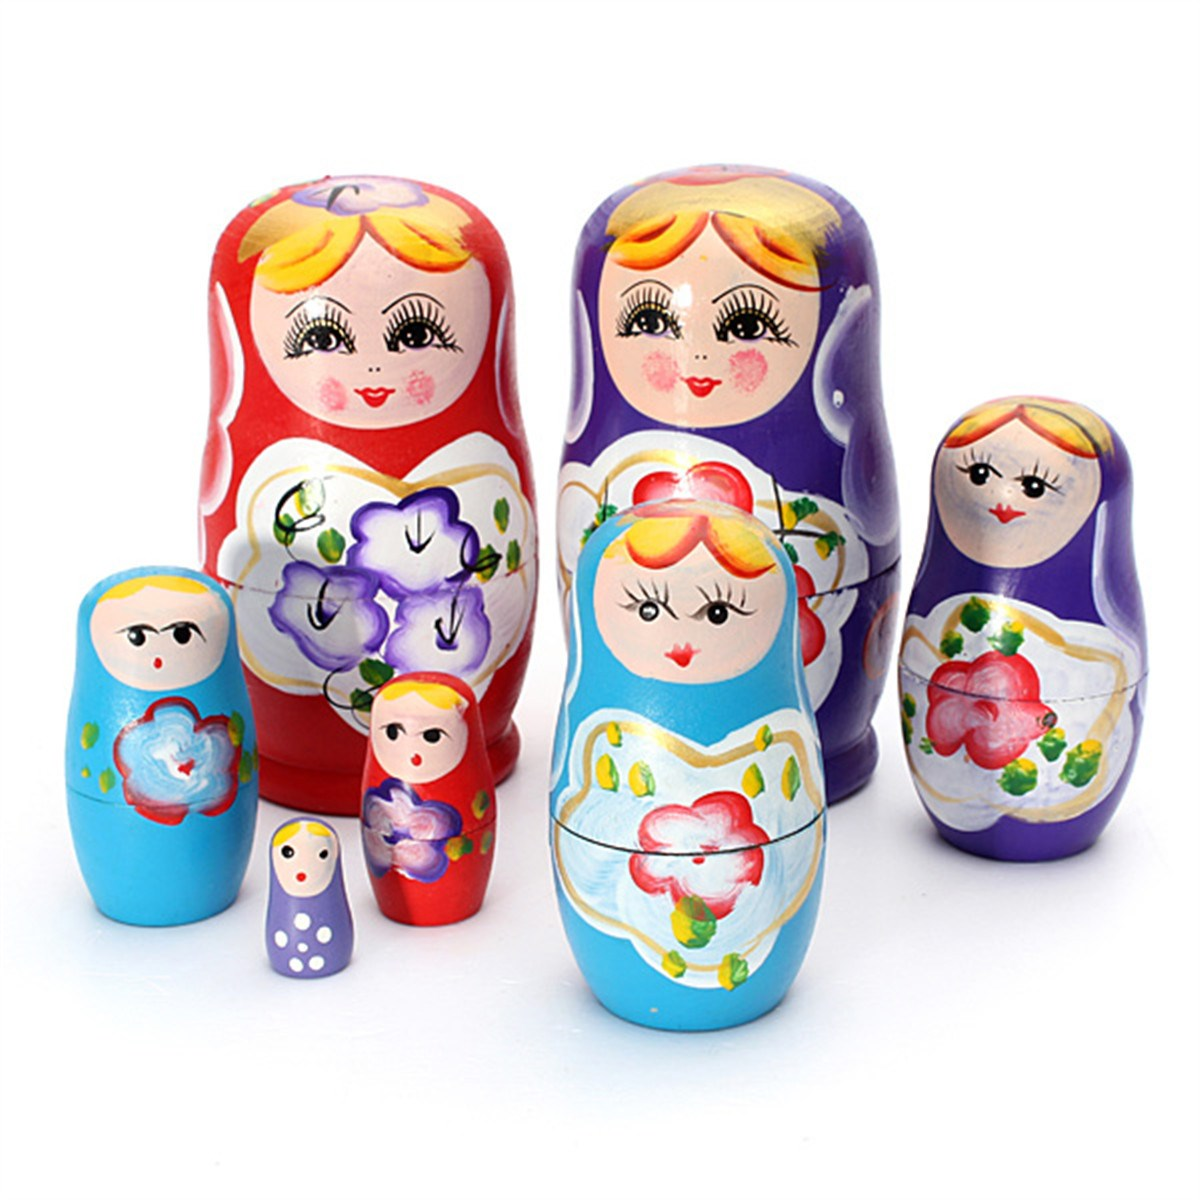 Lovely Russian Nesting Matryoshka 5 Piece Wooden Doll Set Wooden Doll Hand Painted Doll Toy